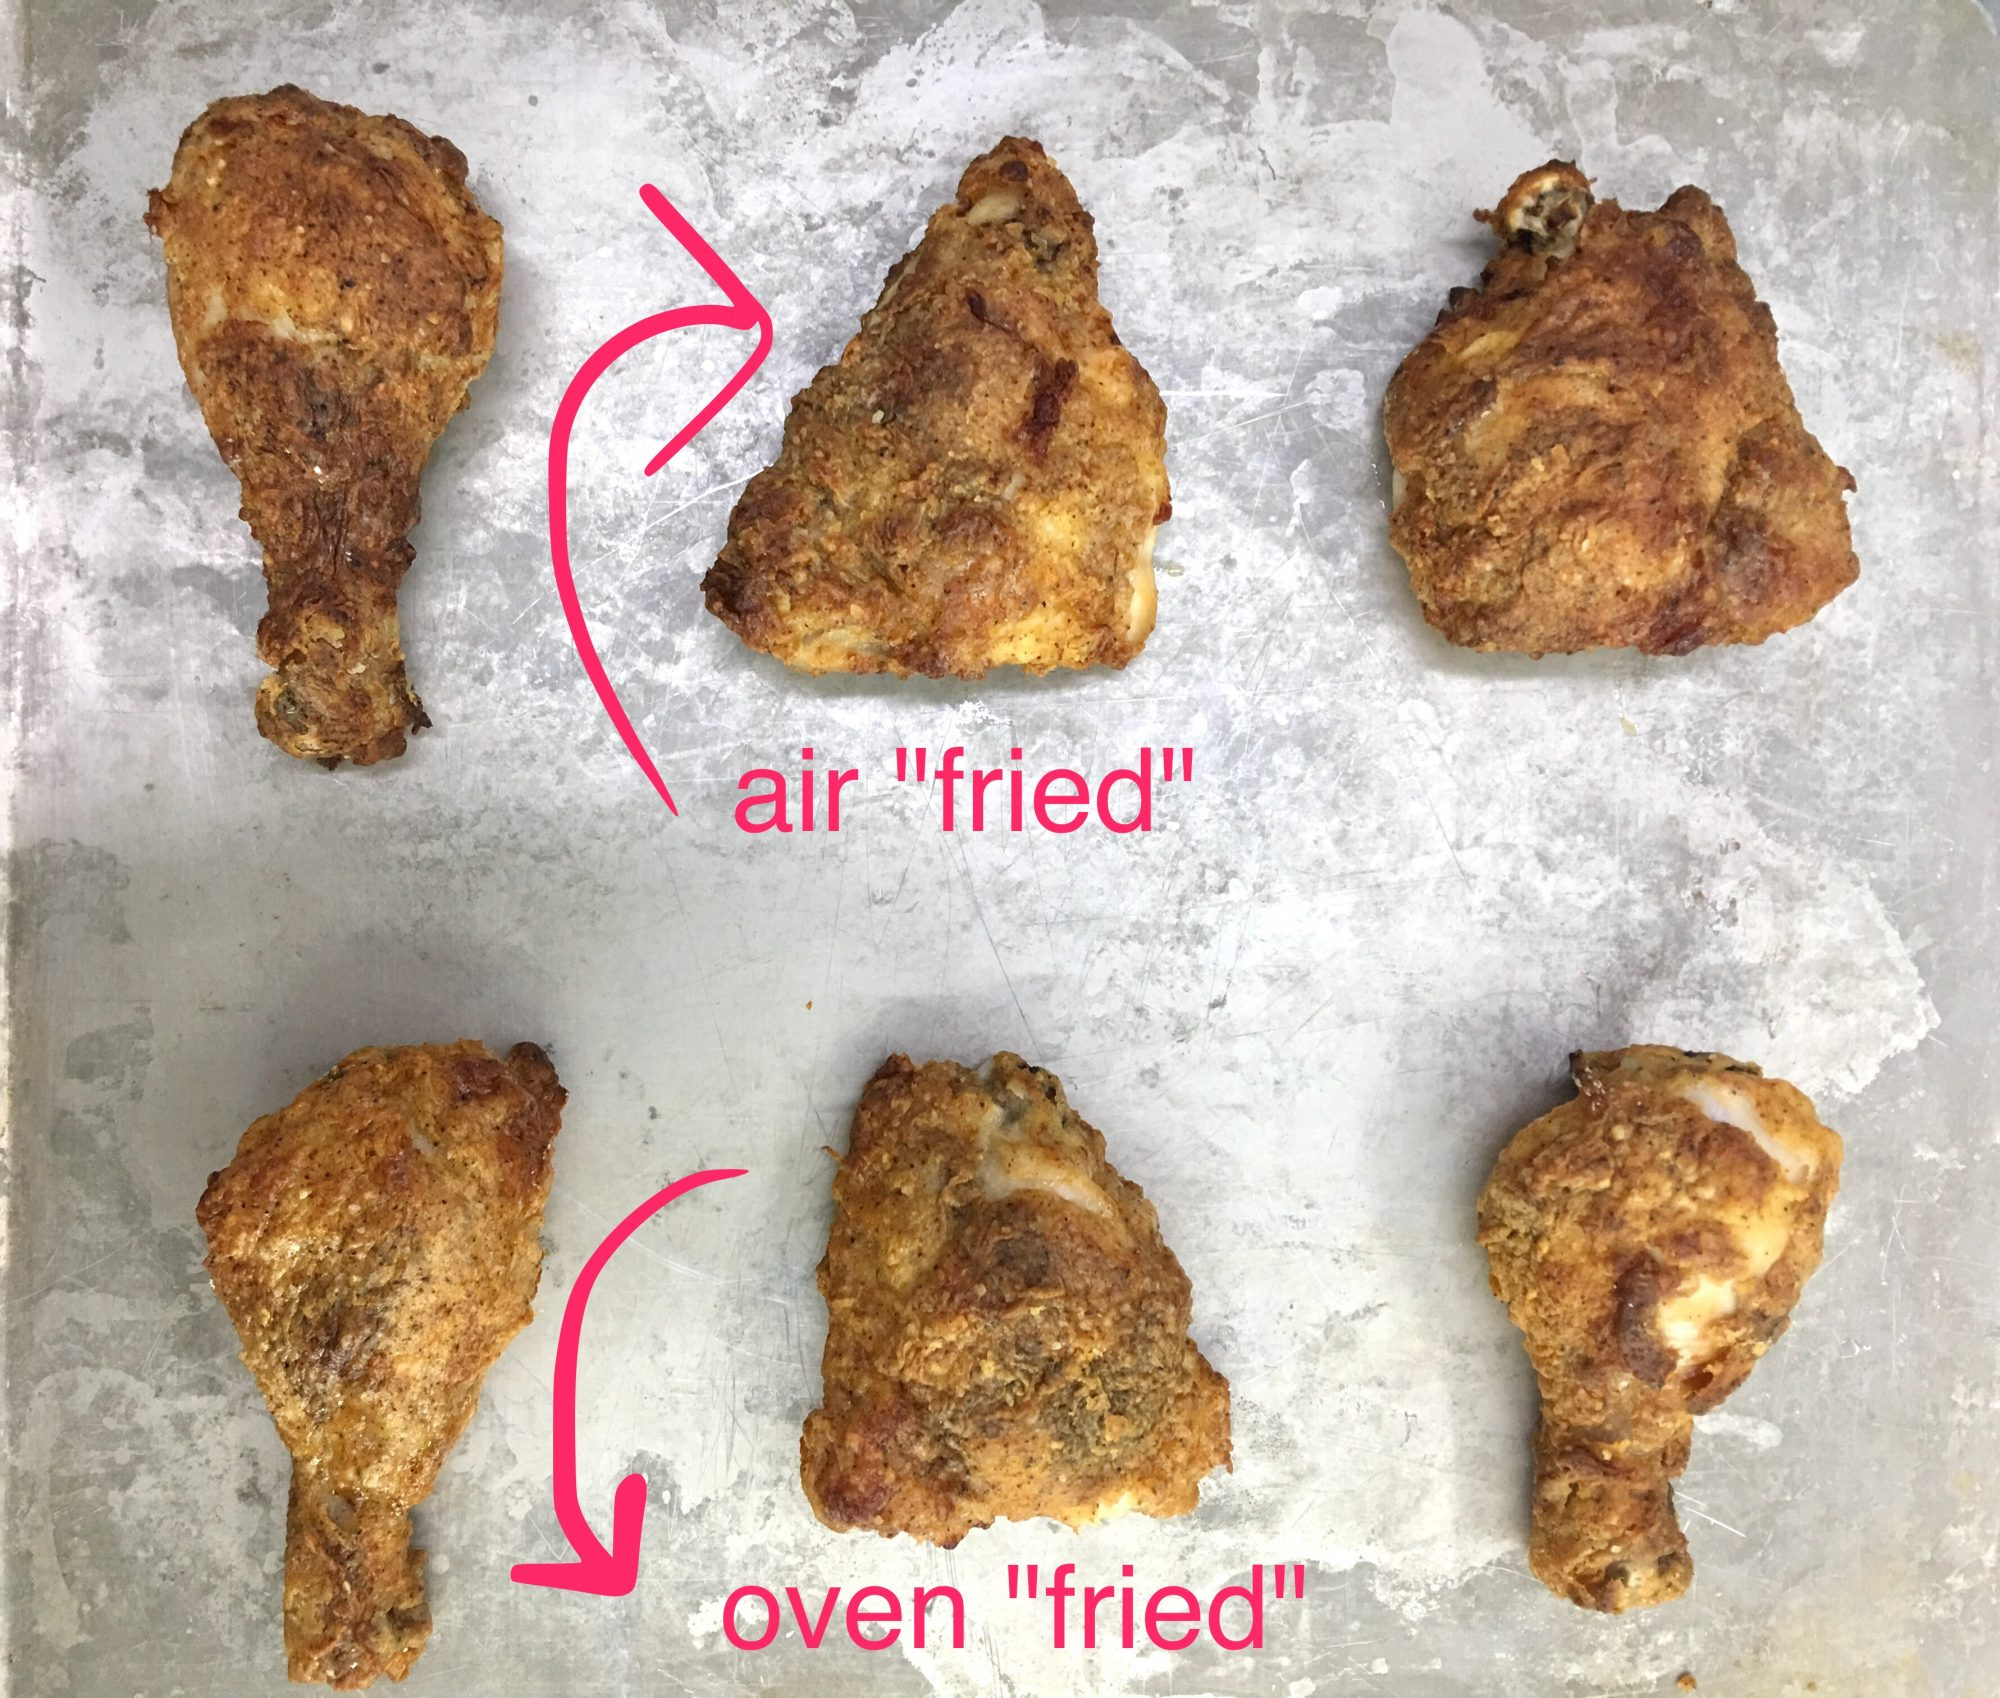 oven-fried-chicken-test.jpeg